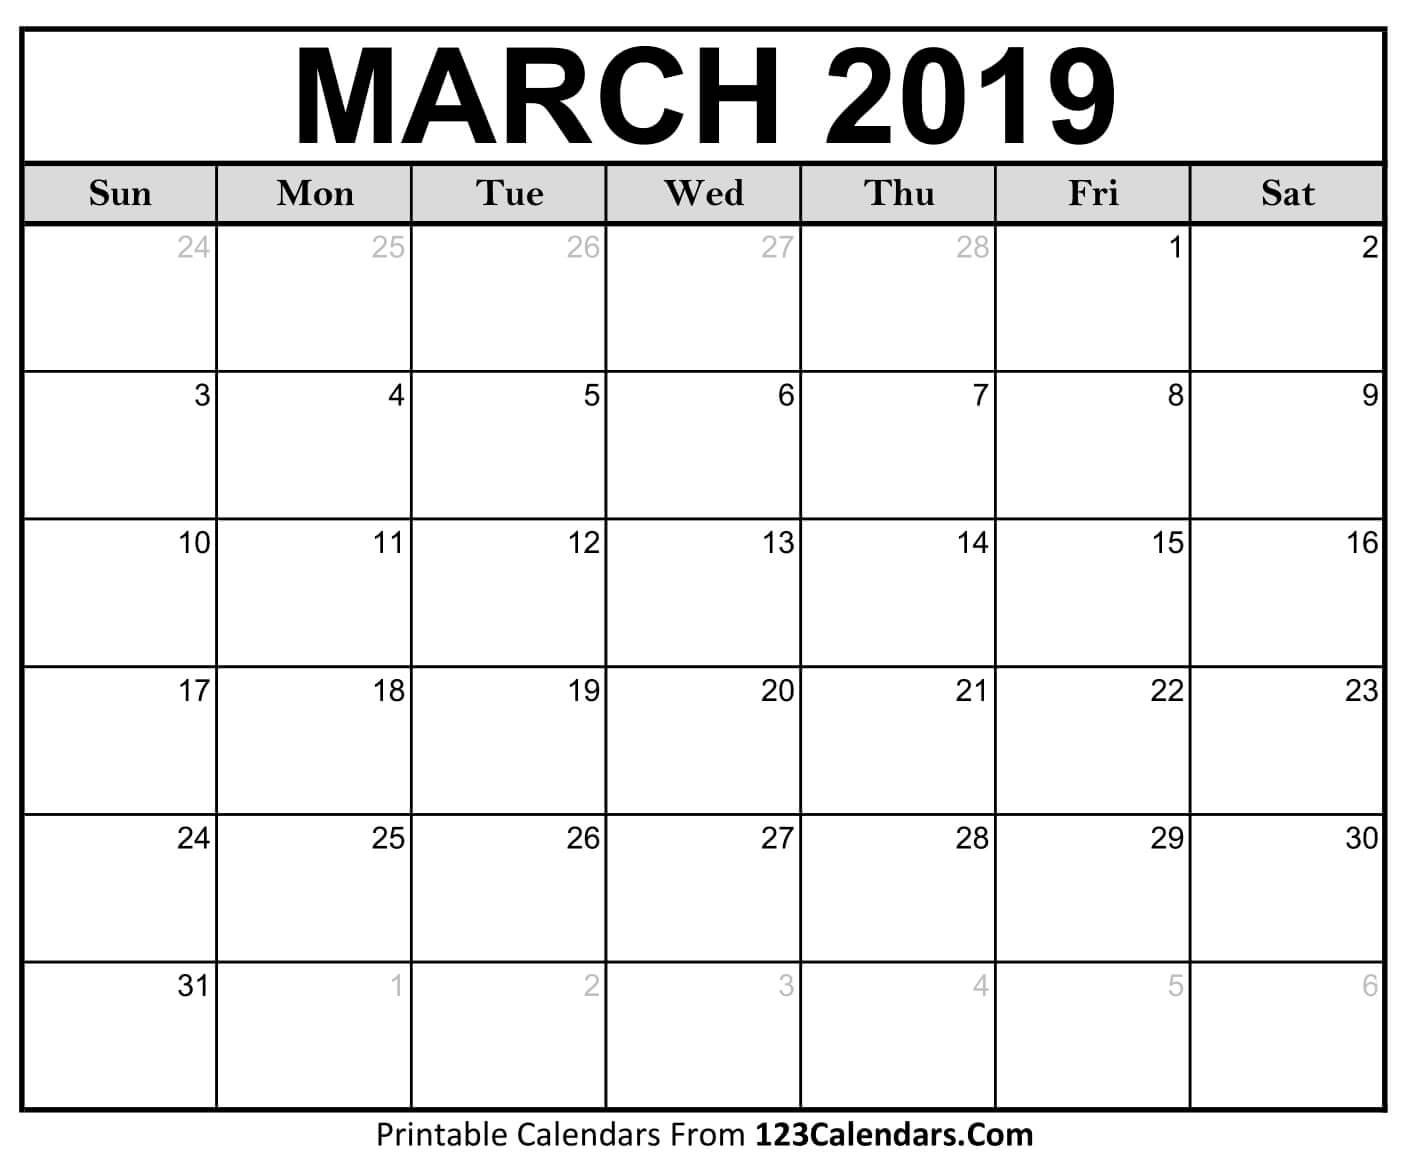 Printable March 2019 Calendar Templates – 123Calendars Calendar 2019 March